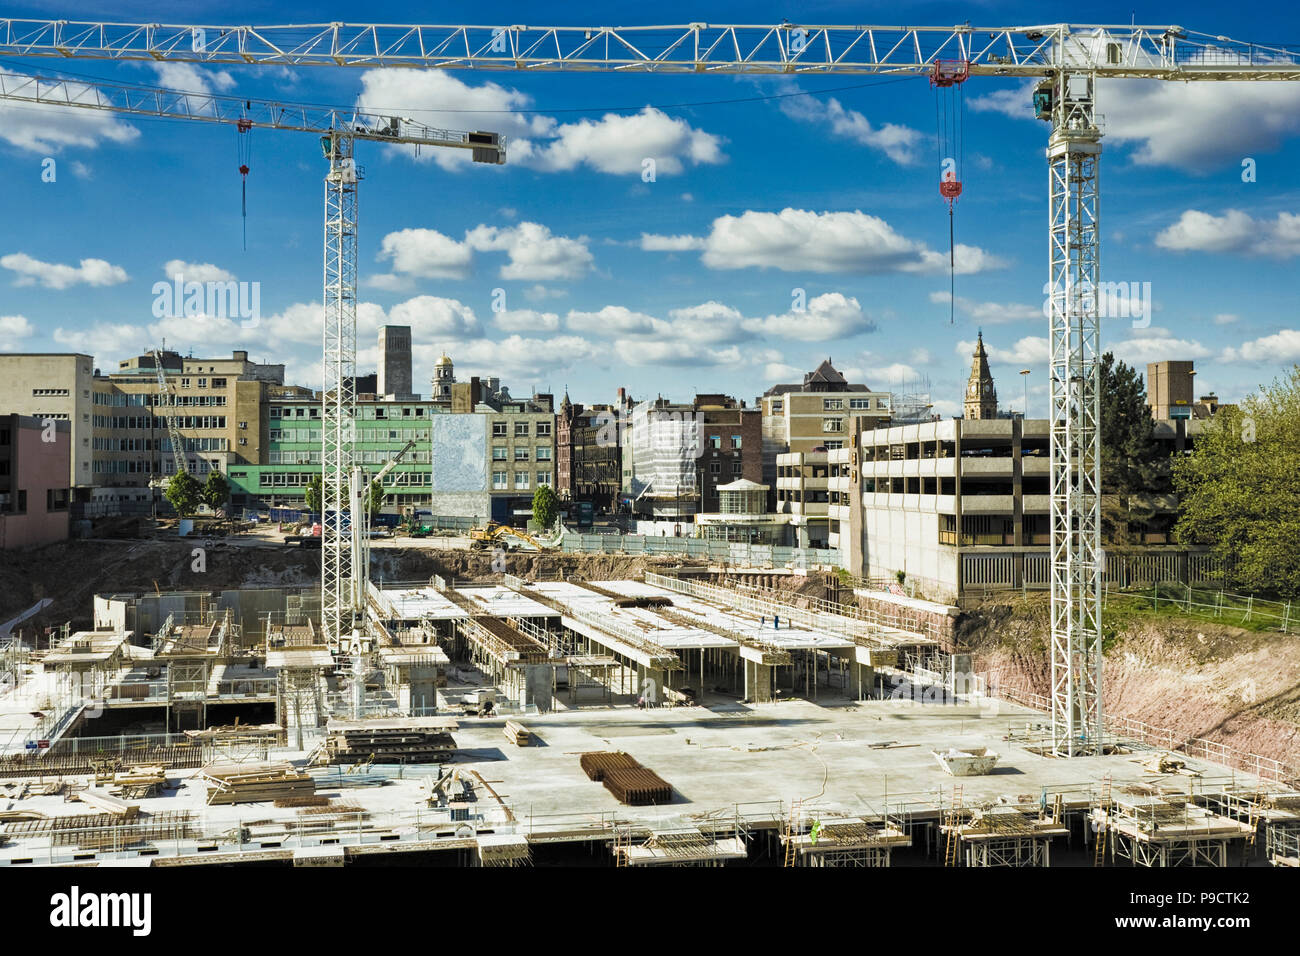 Tall cranes at an inner city construction site, England, UK - Stock Image